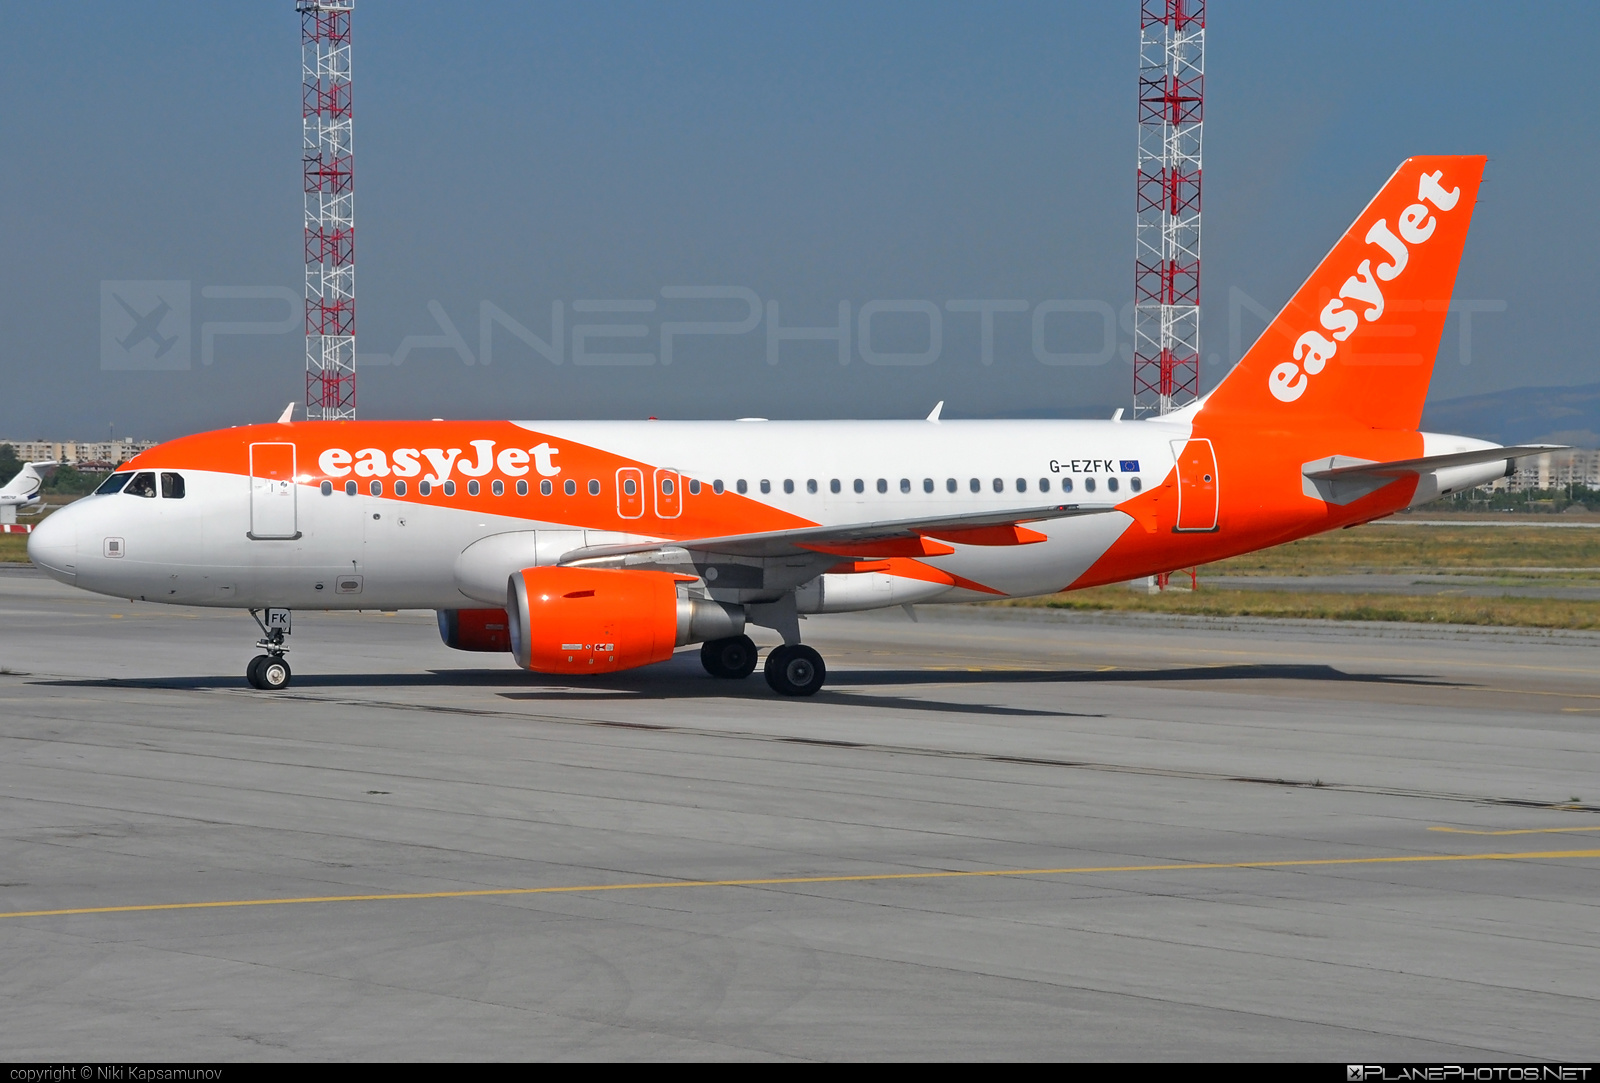 Airbus A319-111 - G-EZFK operated by easyJet #a319 #a320family #airbus #airbus319 #easyjet